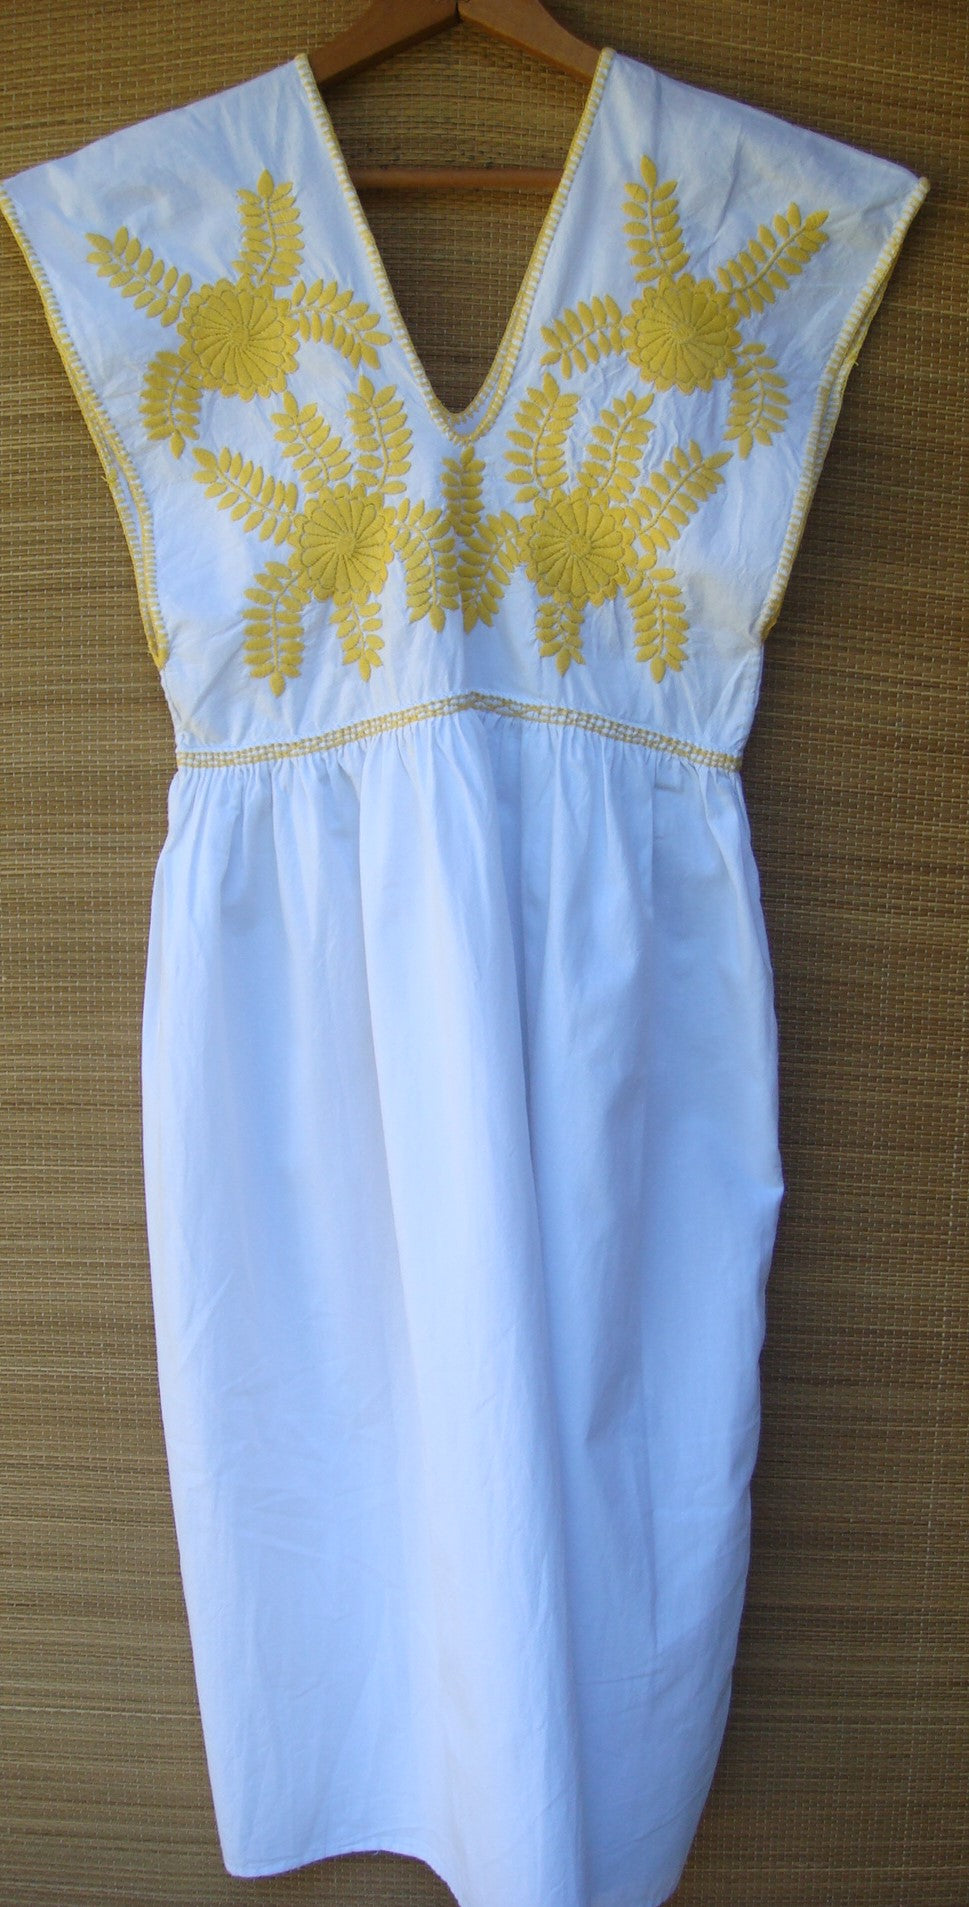 Mexican Mini Dress Frida Kahlo Style White with Yellow Flowers Embroidered X-Small